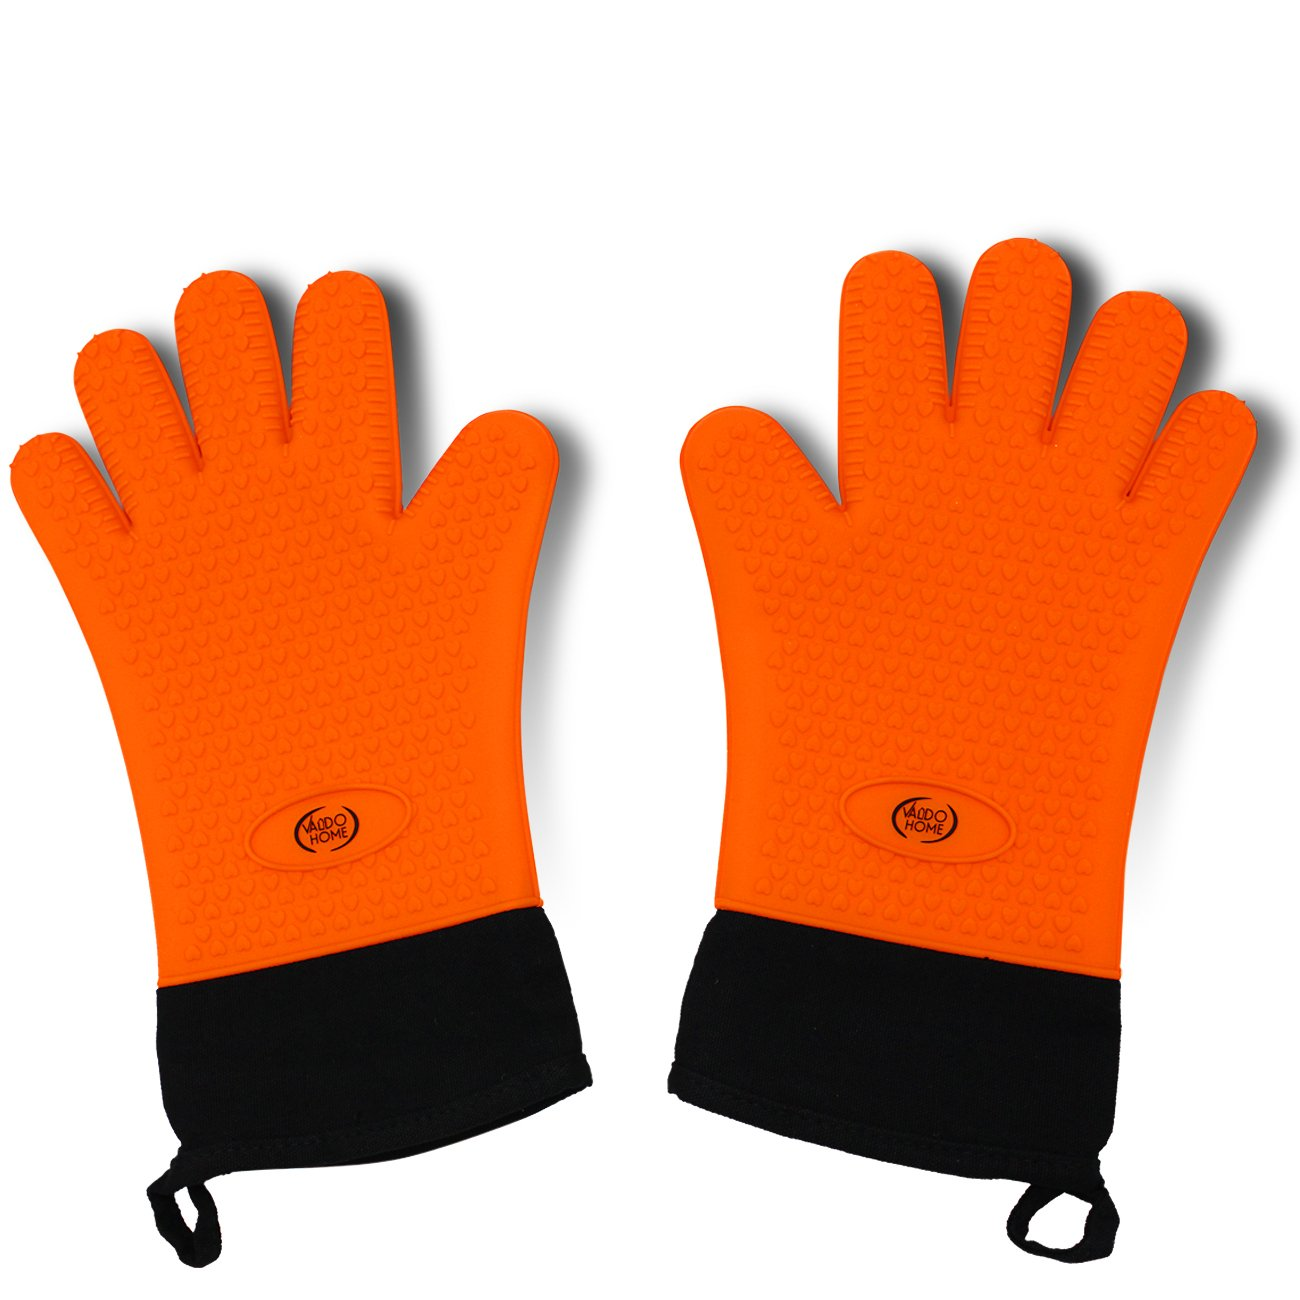 Valdo Home BBQ Grilling Gloves, Heat Resistant Kitchen Silicone Oven Mitts Extra Long Waterproof (Orange)